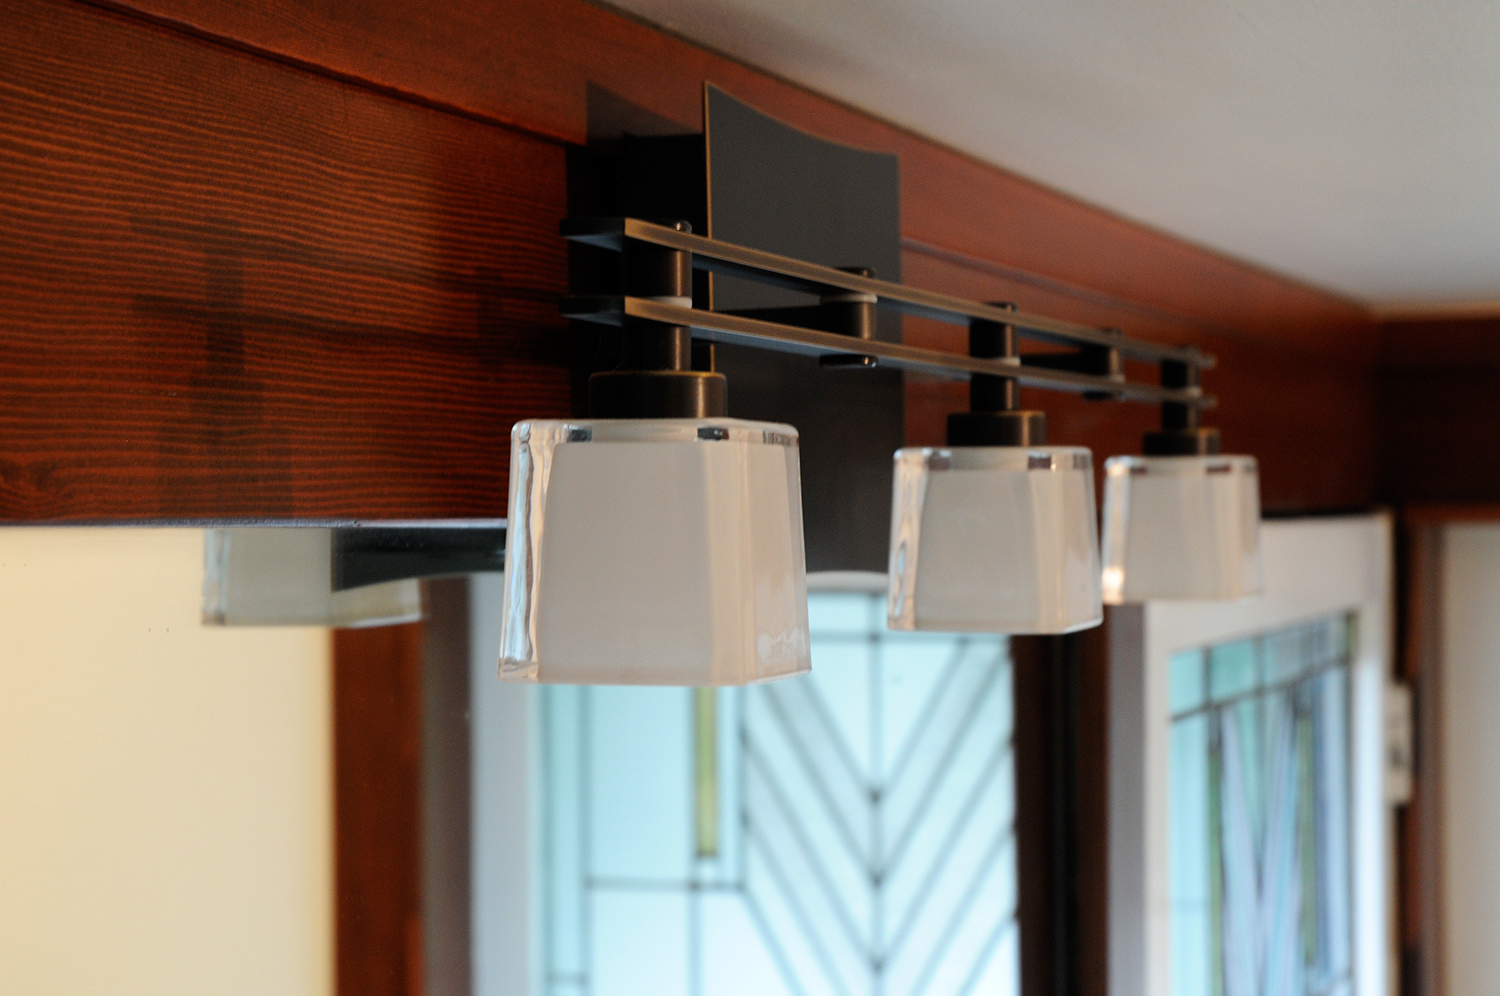 Modern-Prairie-Bathroom-Light-Fixture.jpg